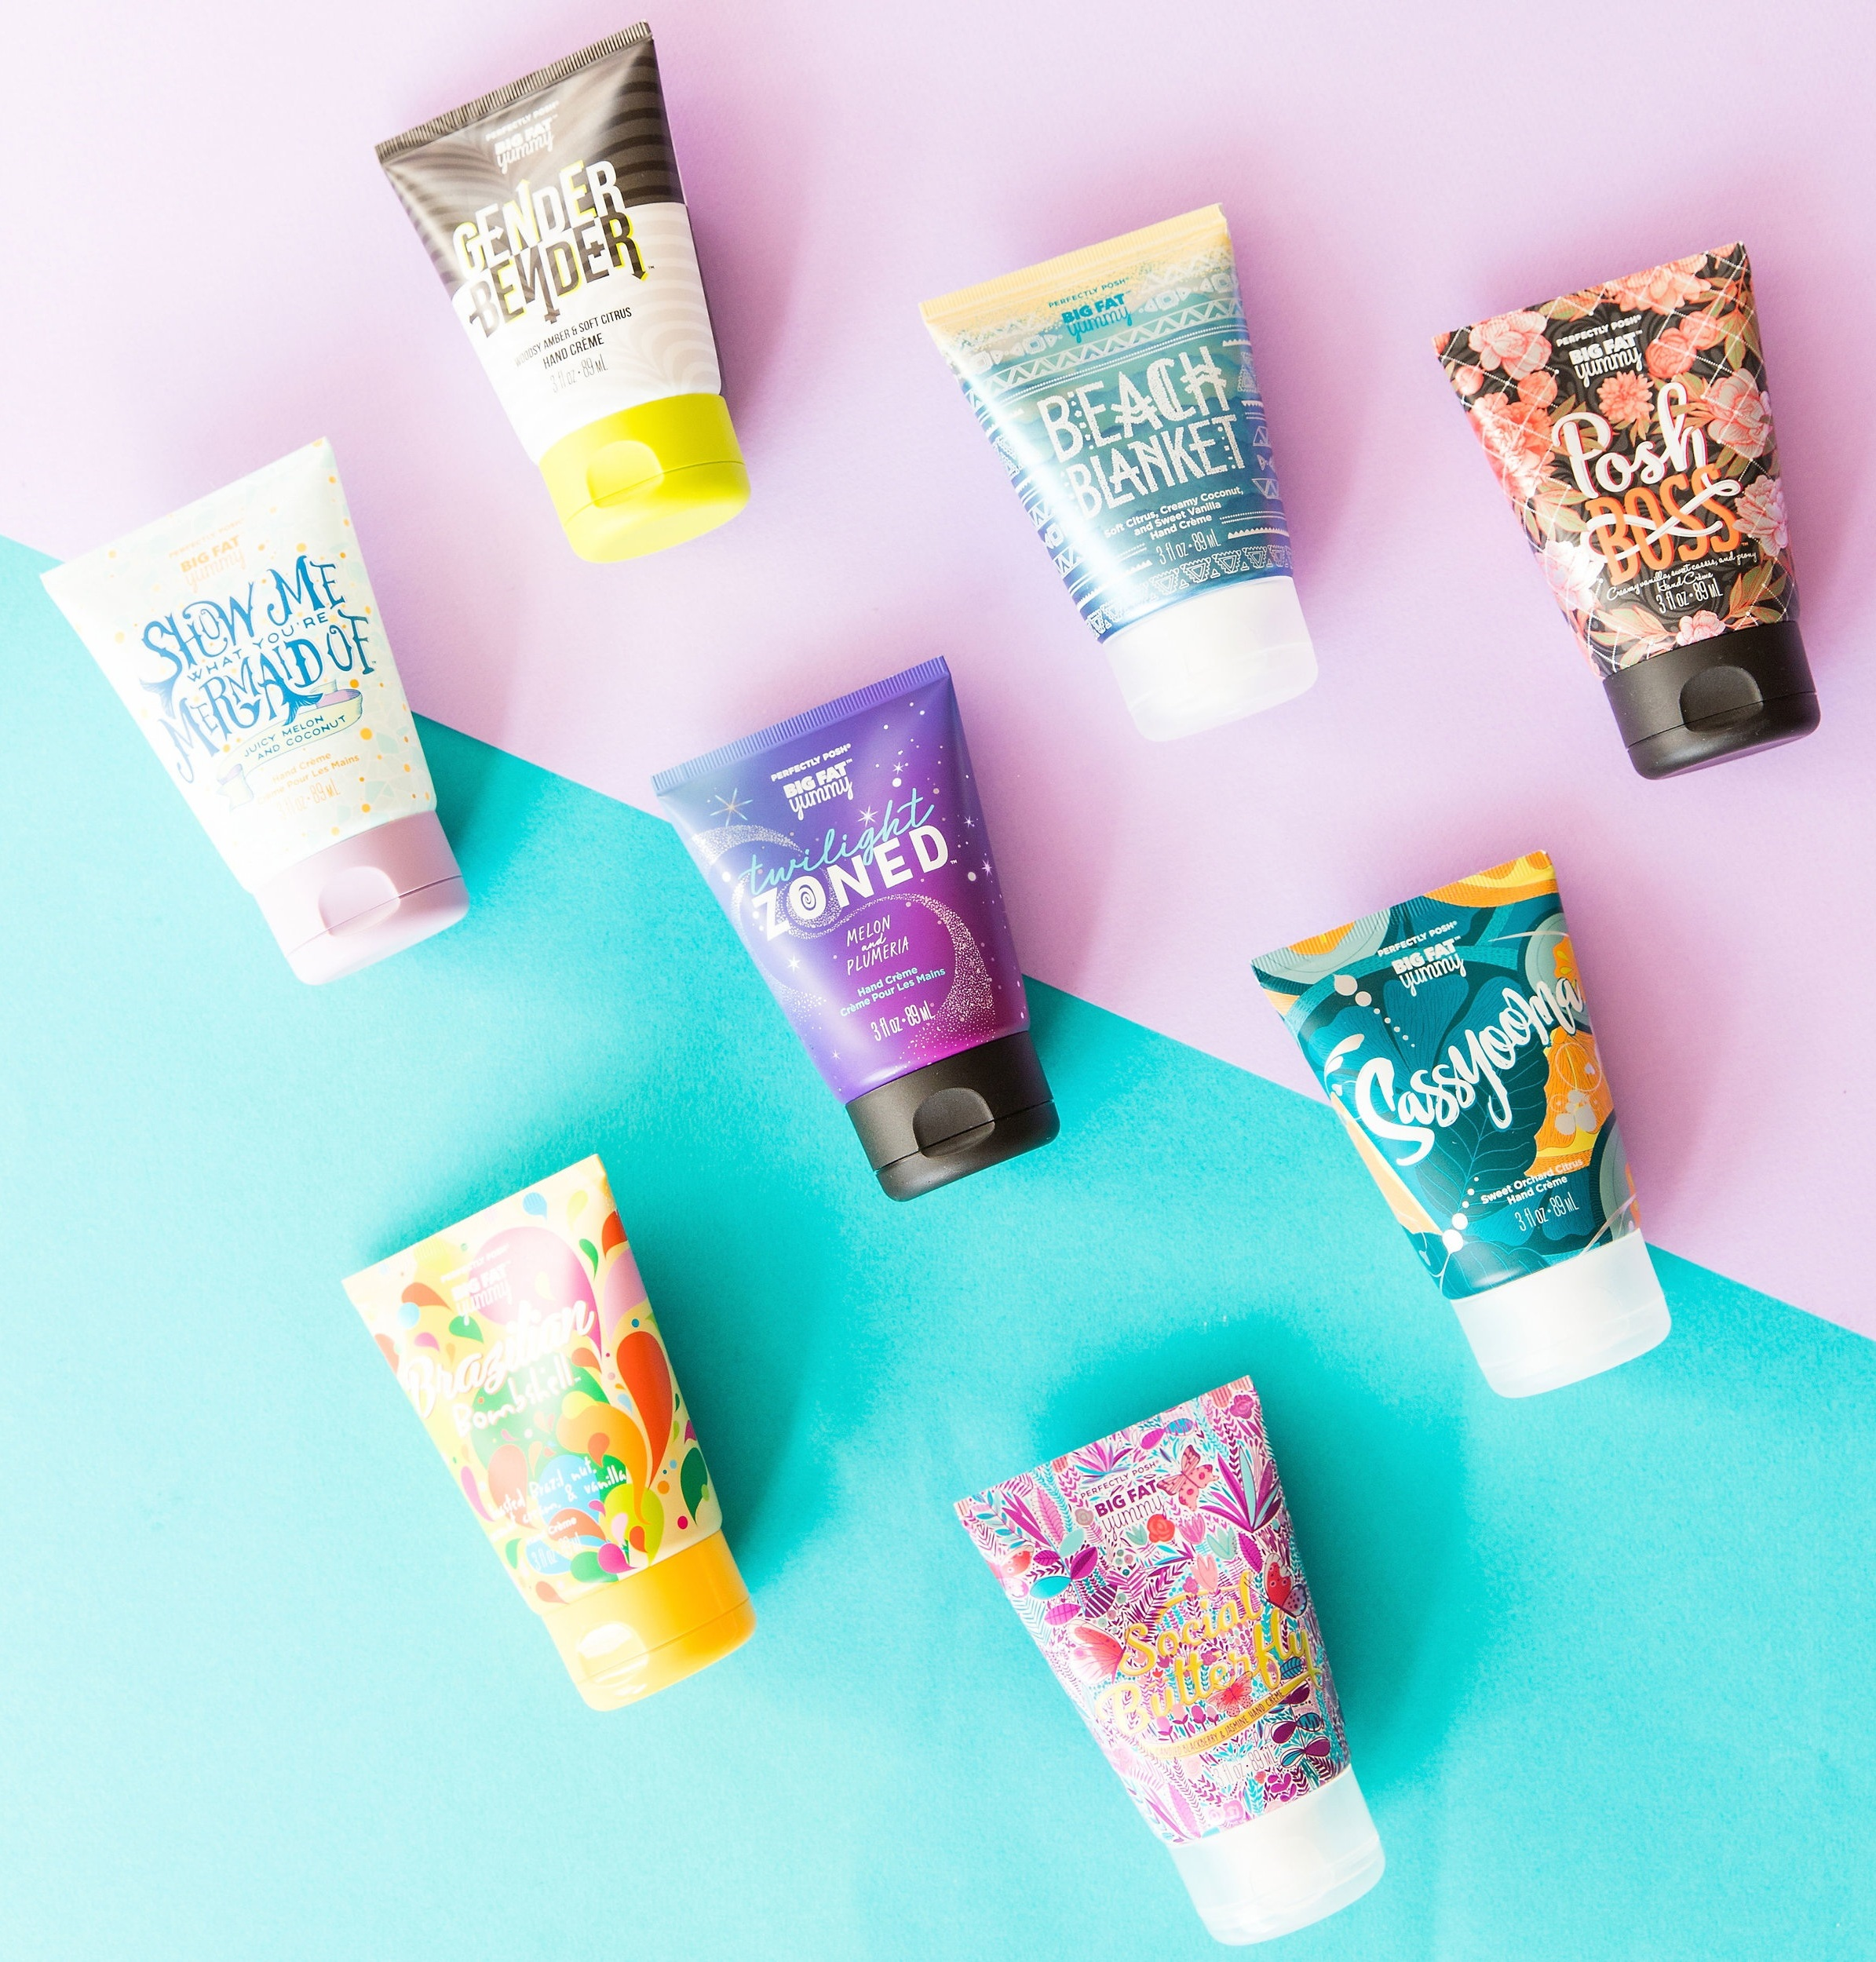 Perfectly Posh Big Fat Yummy Hand Crème, Brazilian Bombshell Big Fat Yummy Hand Crème, Social Butterfly Big Fat Yummy Hand Crème, Sassyooma Big Fat Yummy Hand Crème, Twilight Zoned Big Fat Yummy Hand Crème, Show Me What You're Mermaid Of Big Fat Yummy Hand Crème, Beach Blanket Big Fat Yummy Hand Crème, Posh Boss Big Fat Yummy Hand Crème, Gender Bender Big Fat Yummy Hand Crème, non-greasy hand cream, apricot kernel oil hand cream